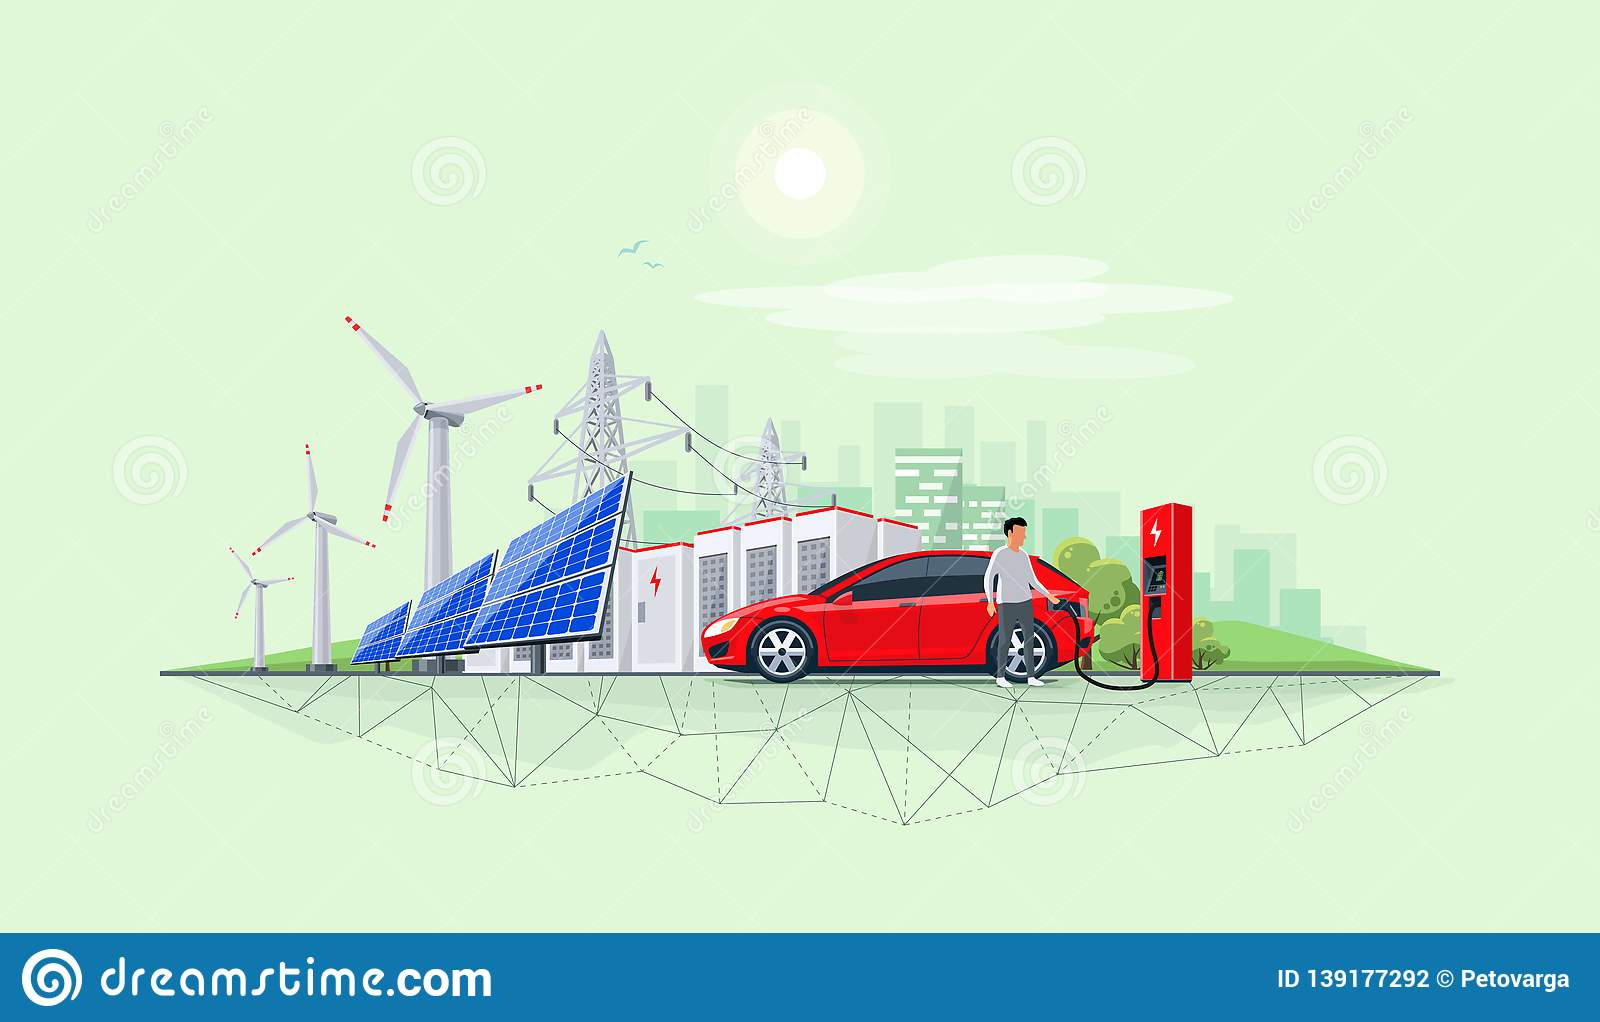 Renewable Energy Battery Storage Power Grid System With